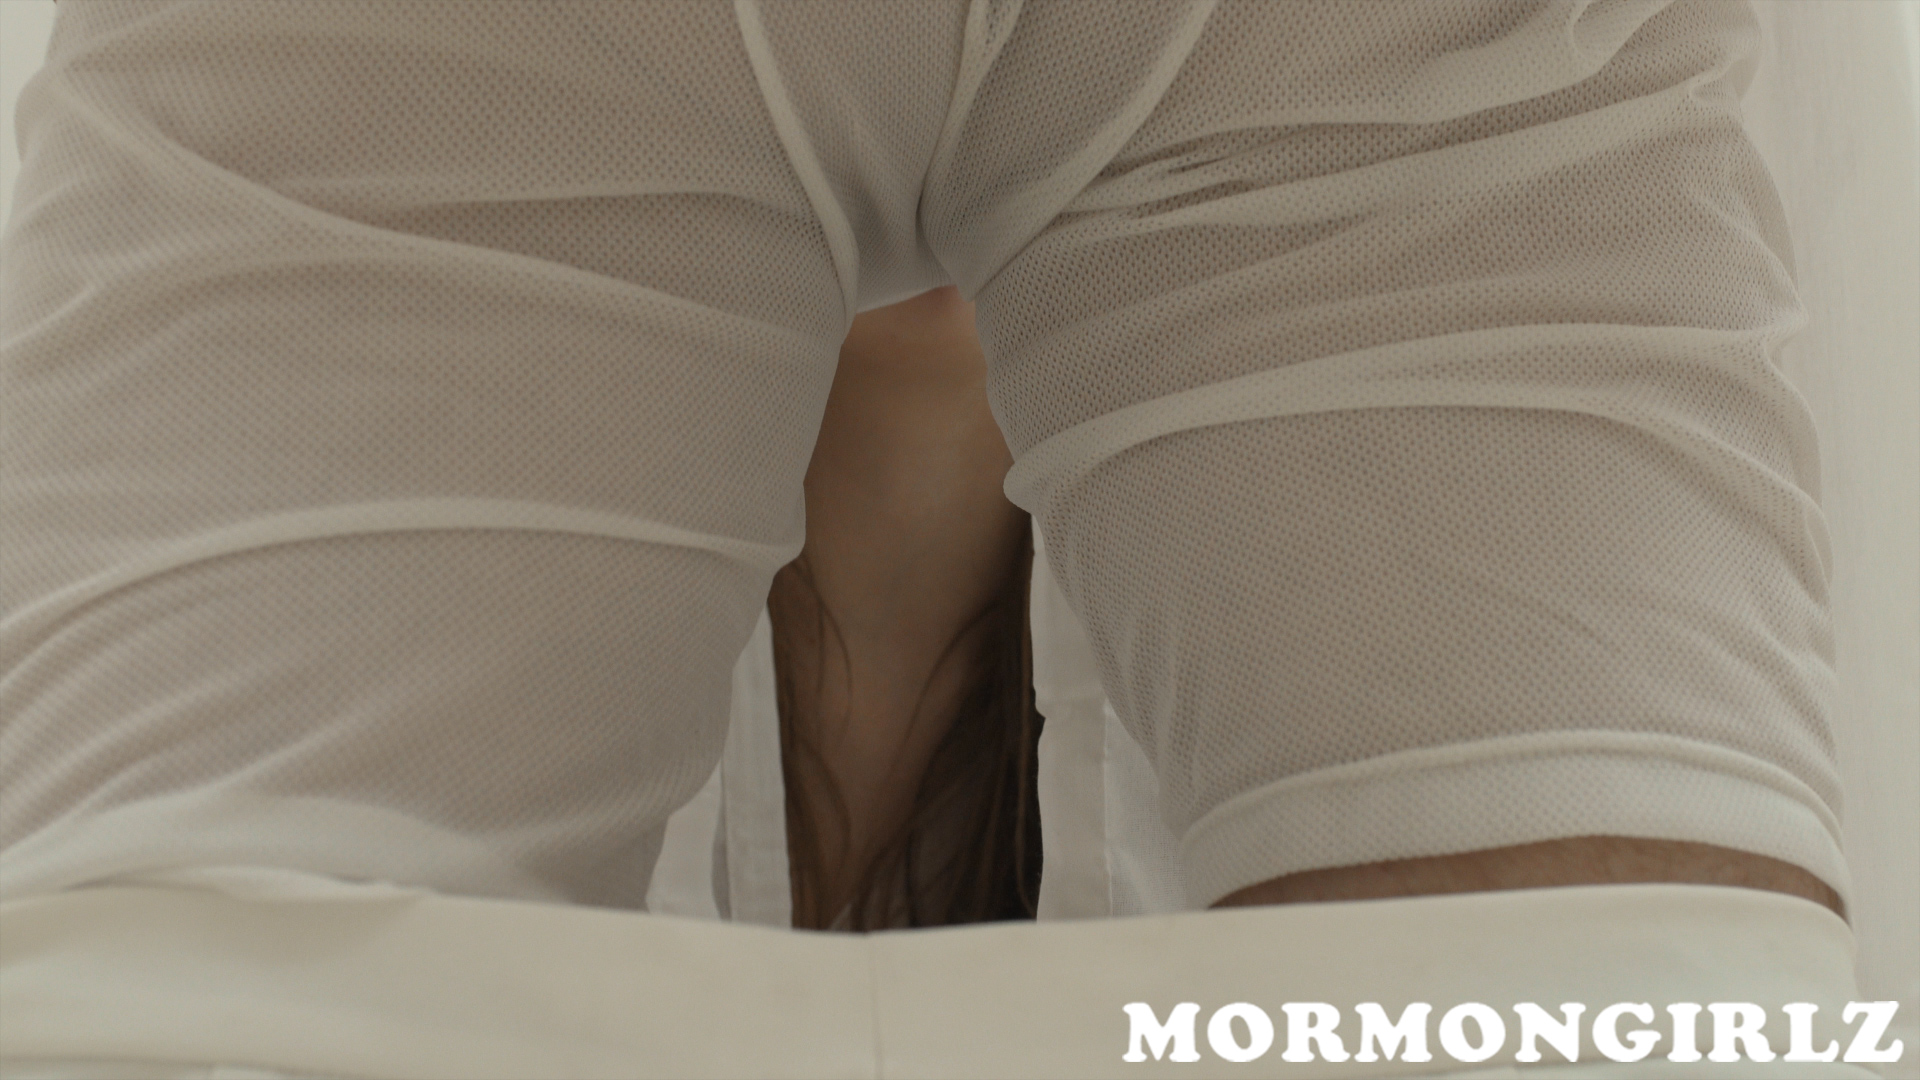 something strange is waiting behind the curtain for this virgin mormon sister #5